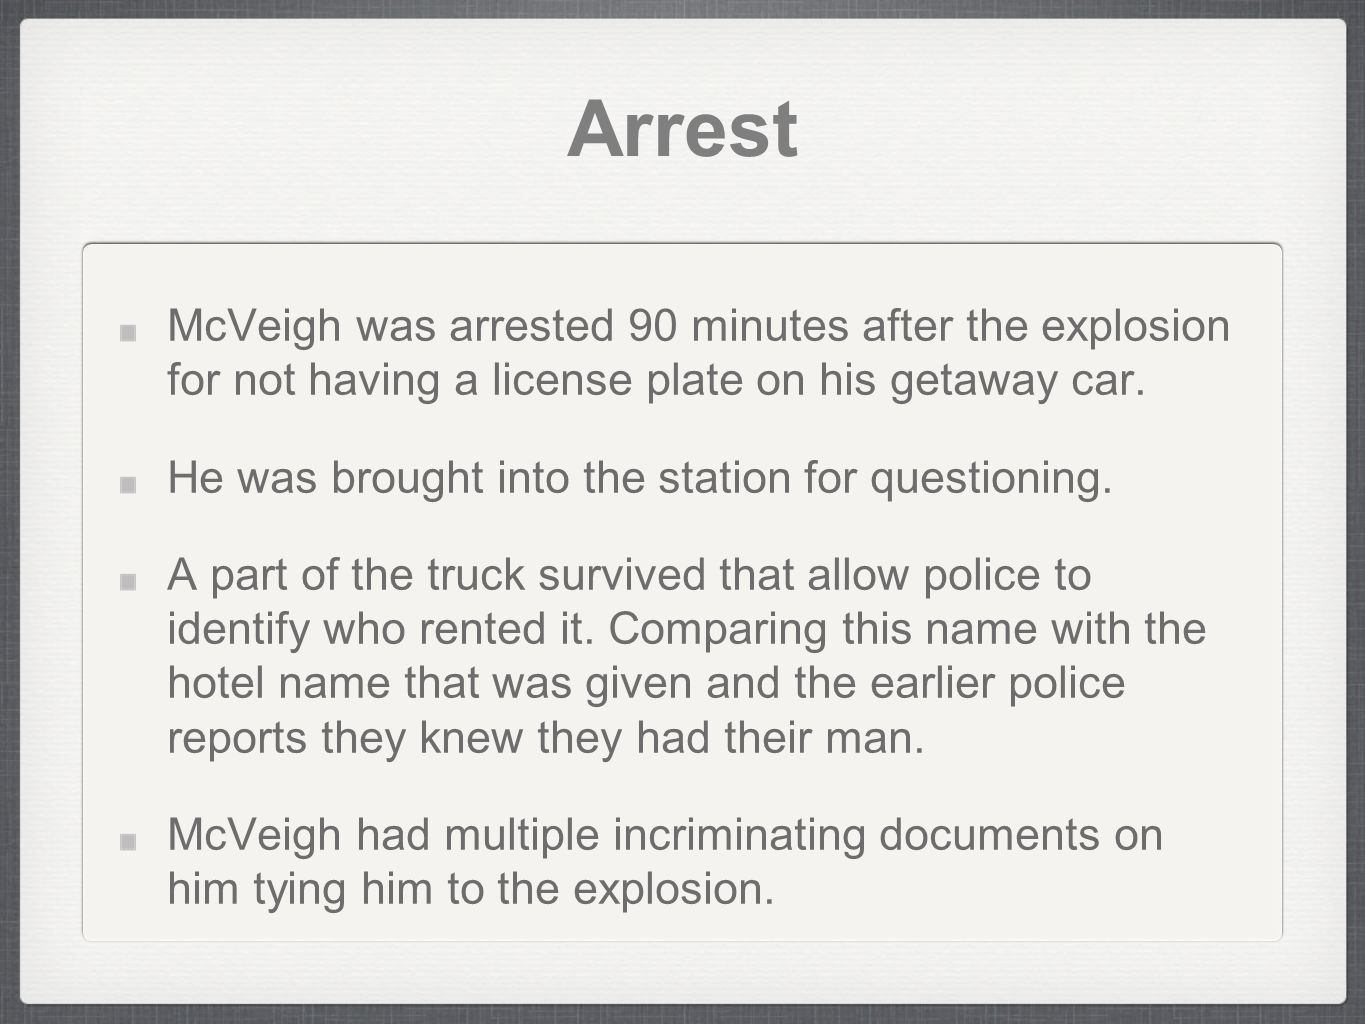 Arrest McVeigh was arrested 90 minutes after the explosion for not having a license plate on his getaway car.